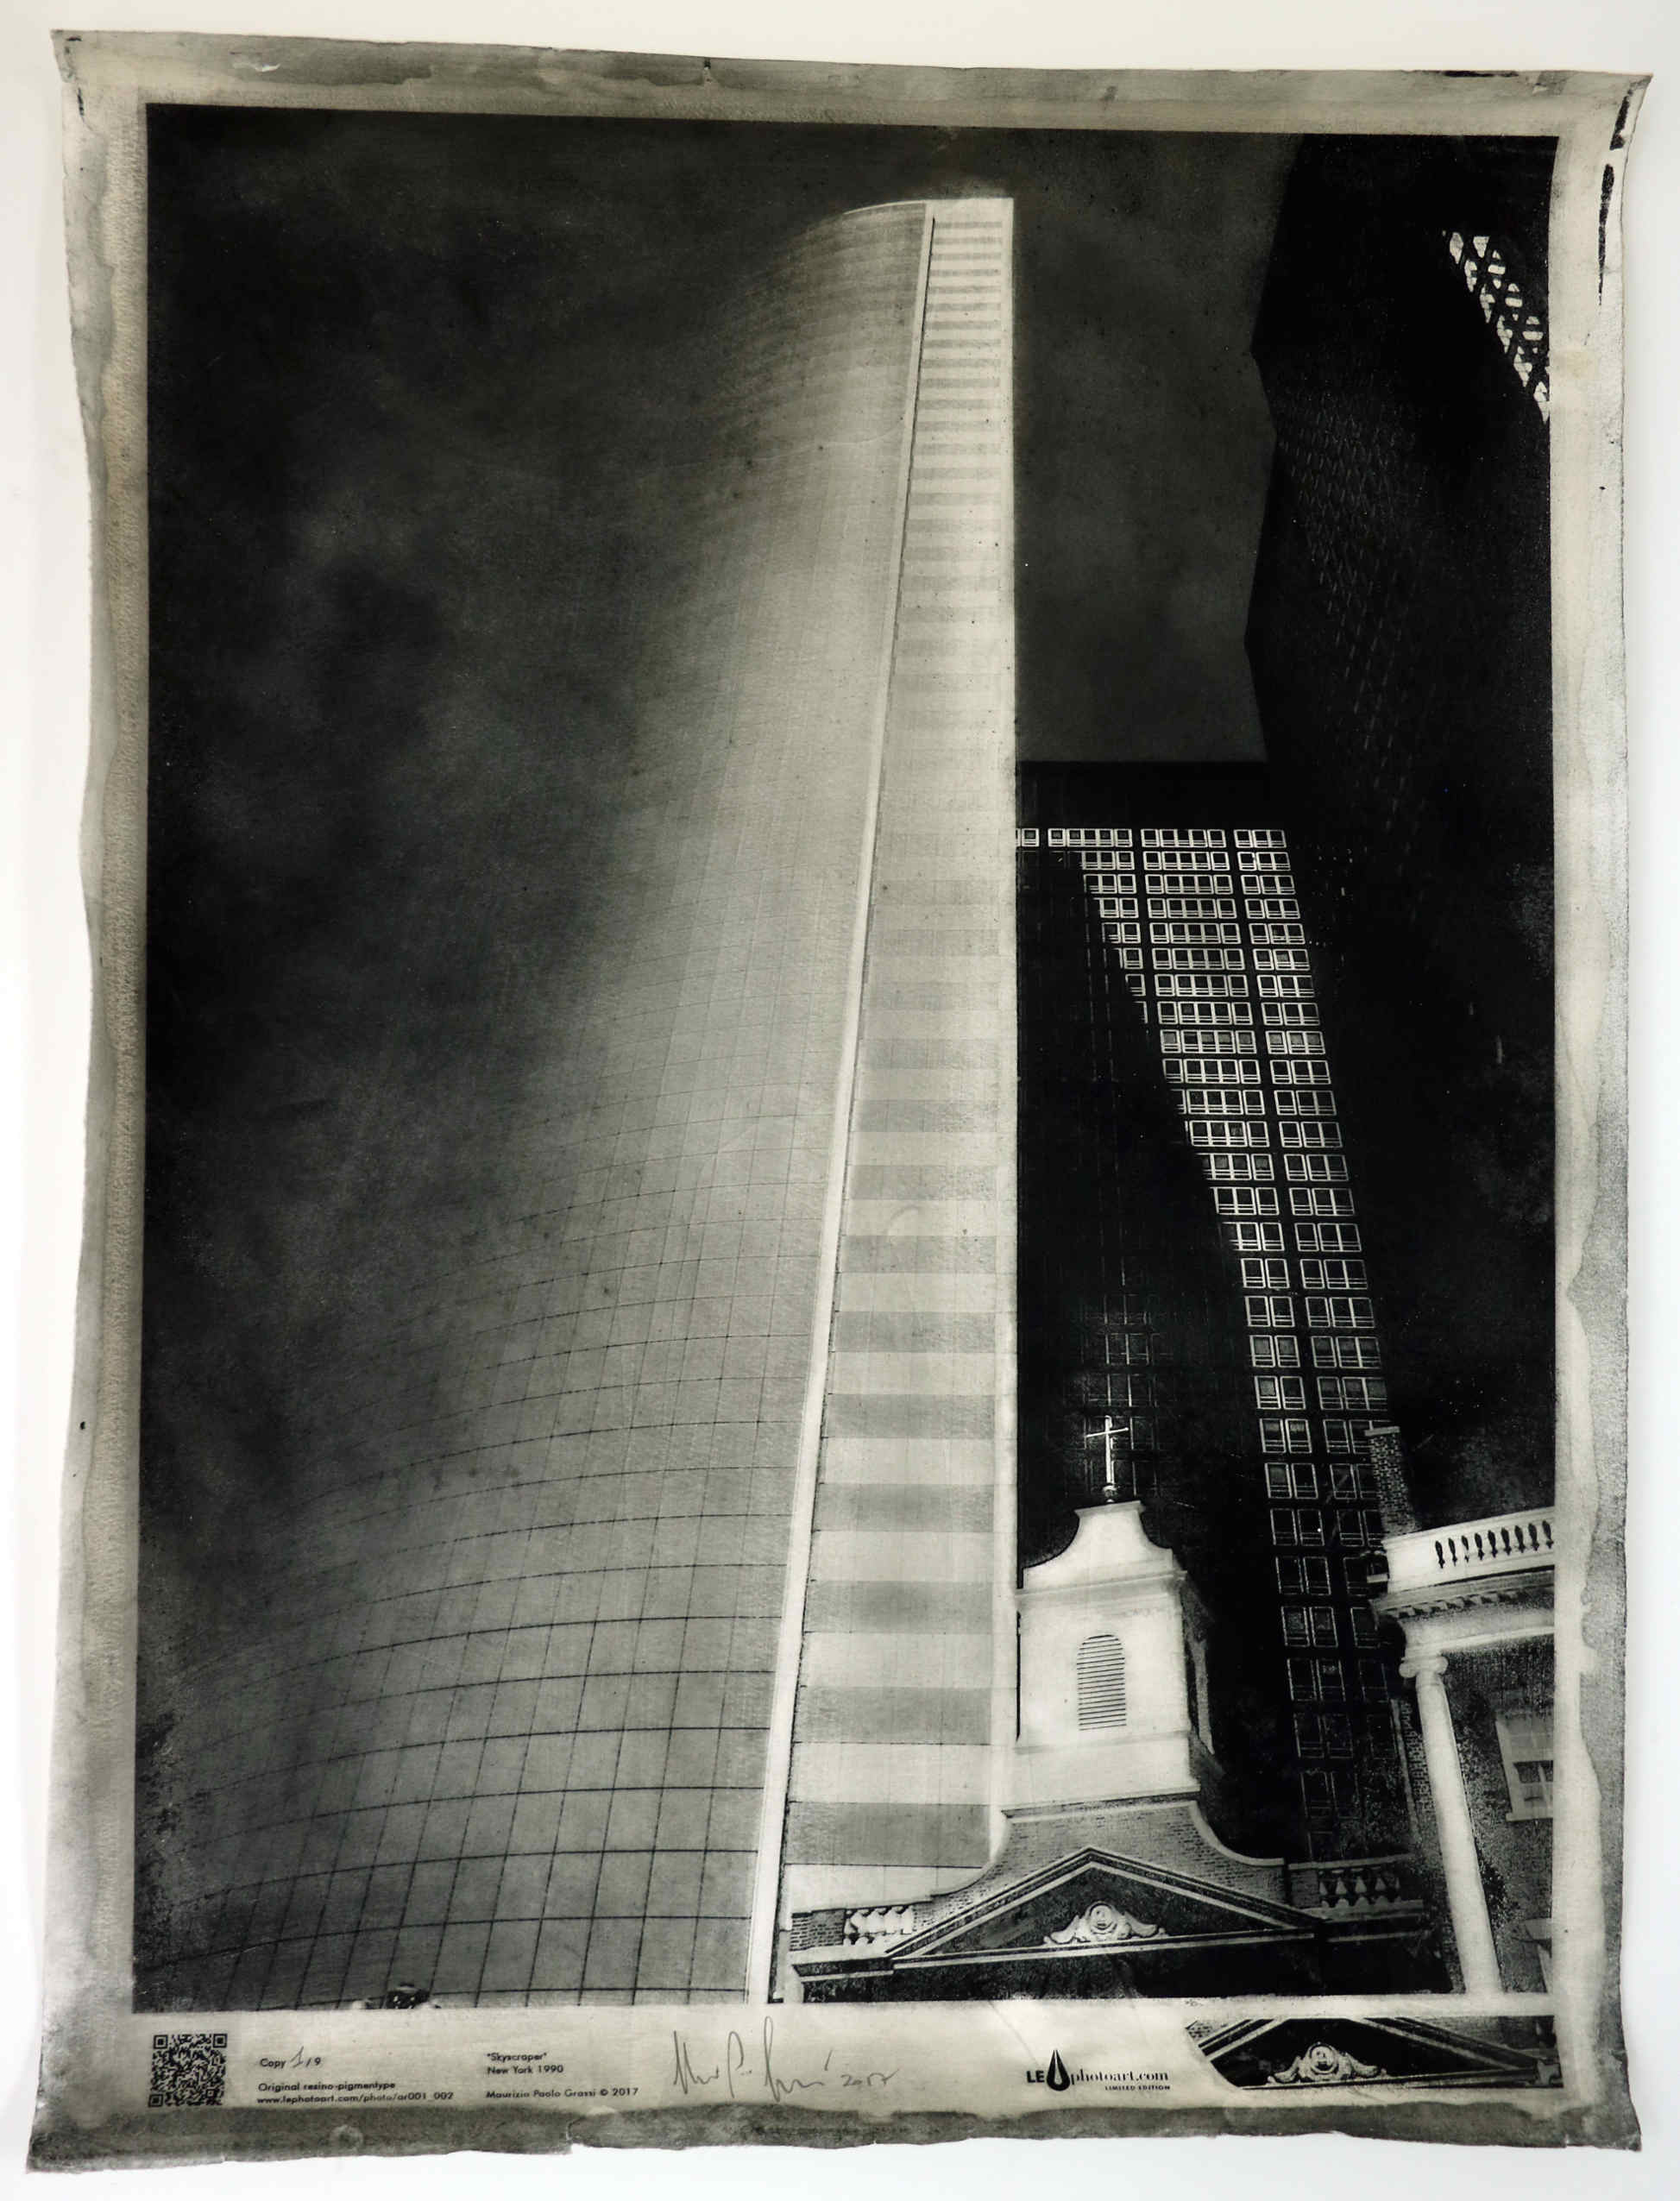 New York. Limited edition photography